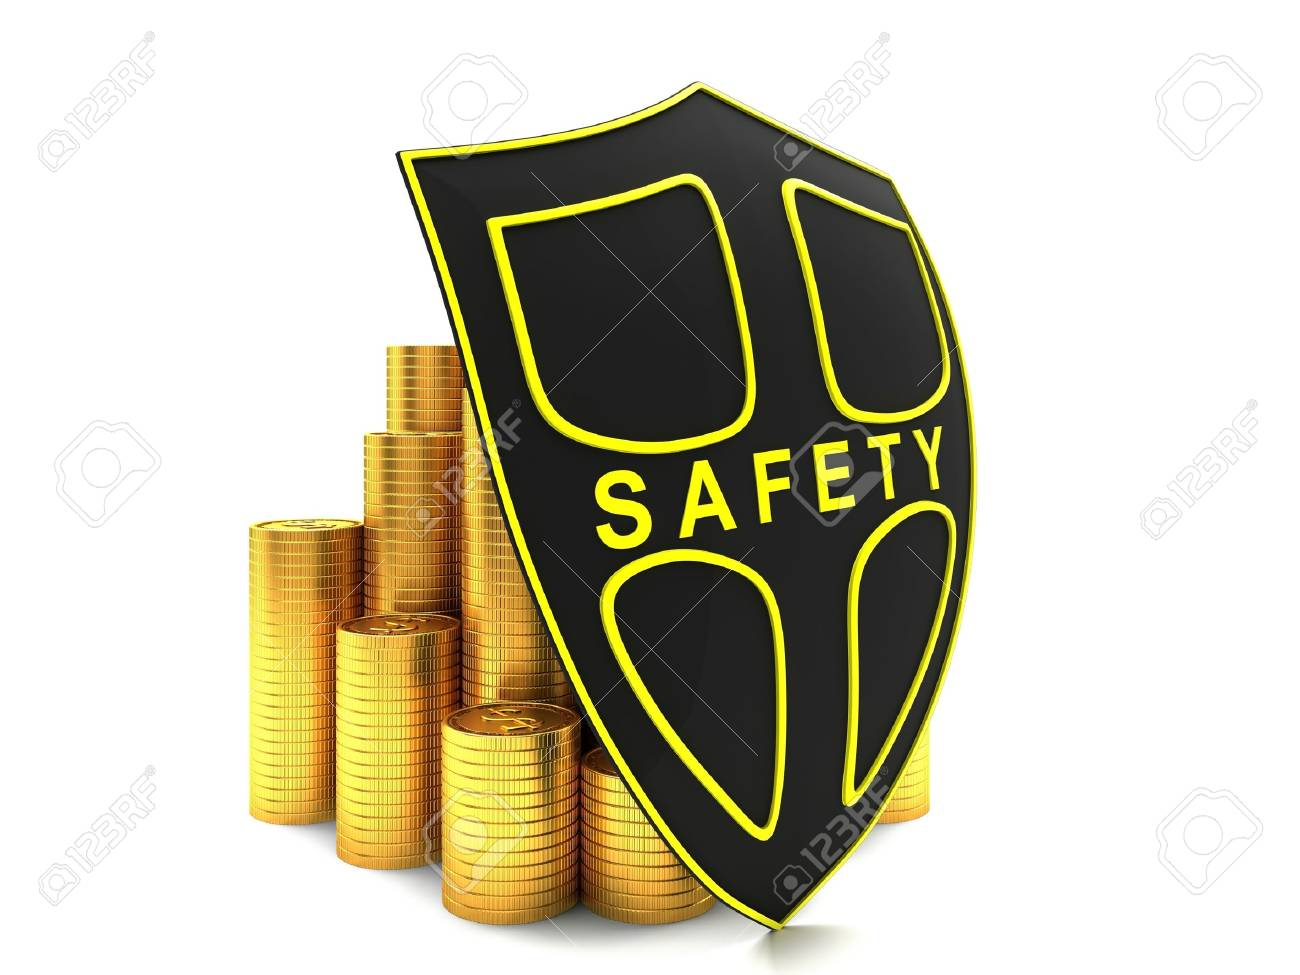 Investment is protected. Illustration on white background. Stock Illustration - 16464951